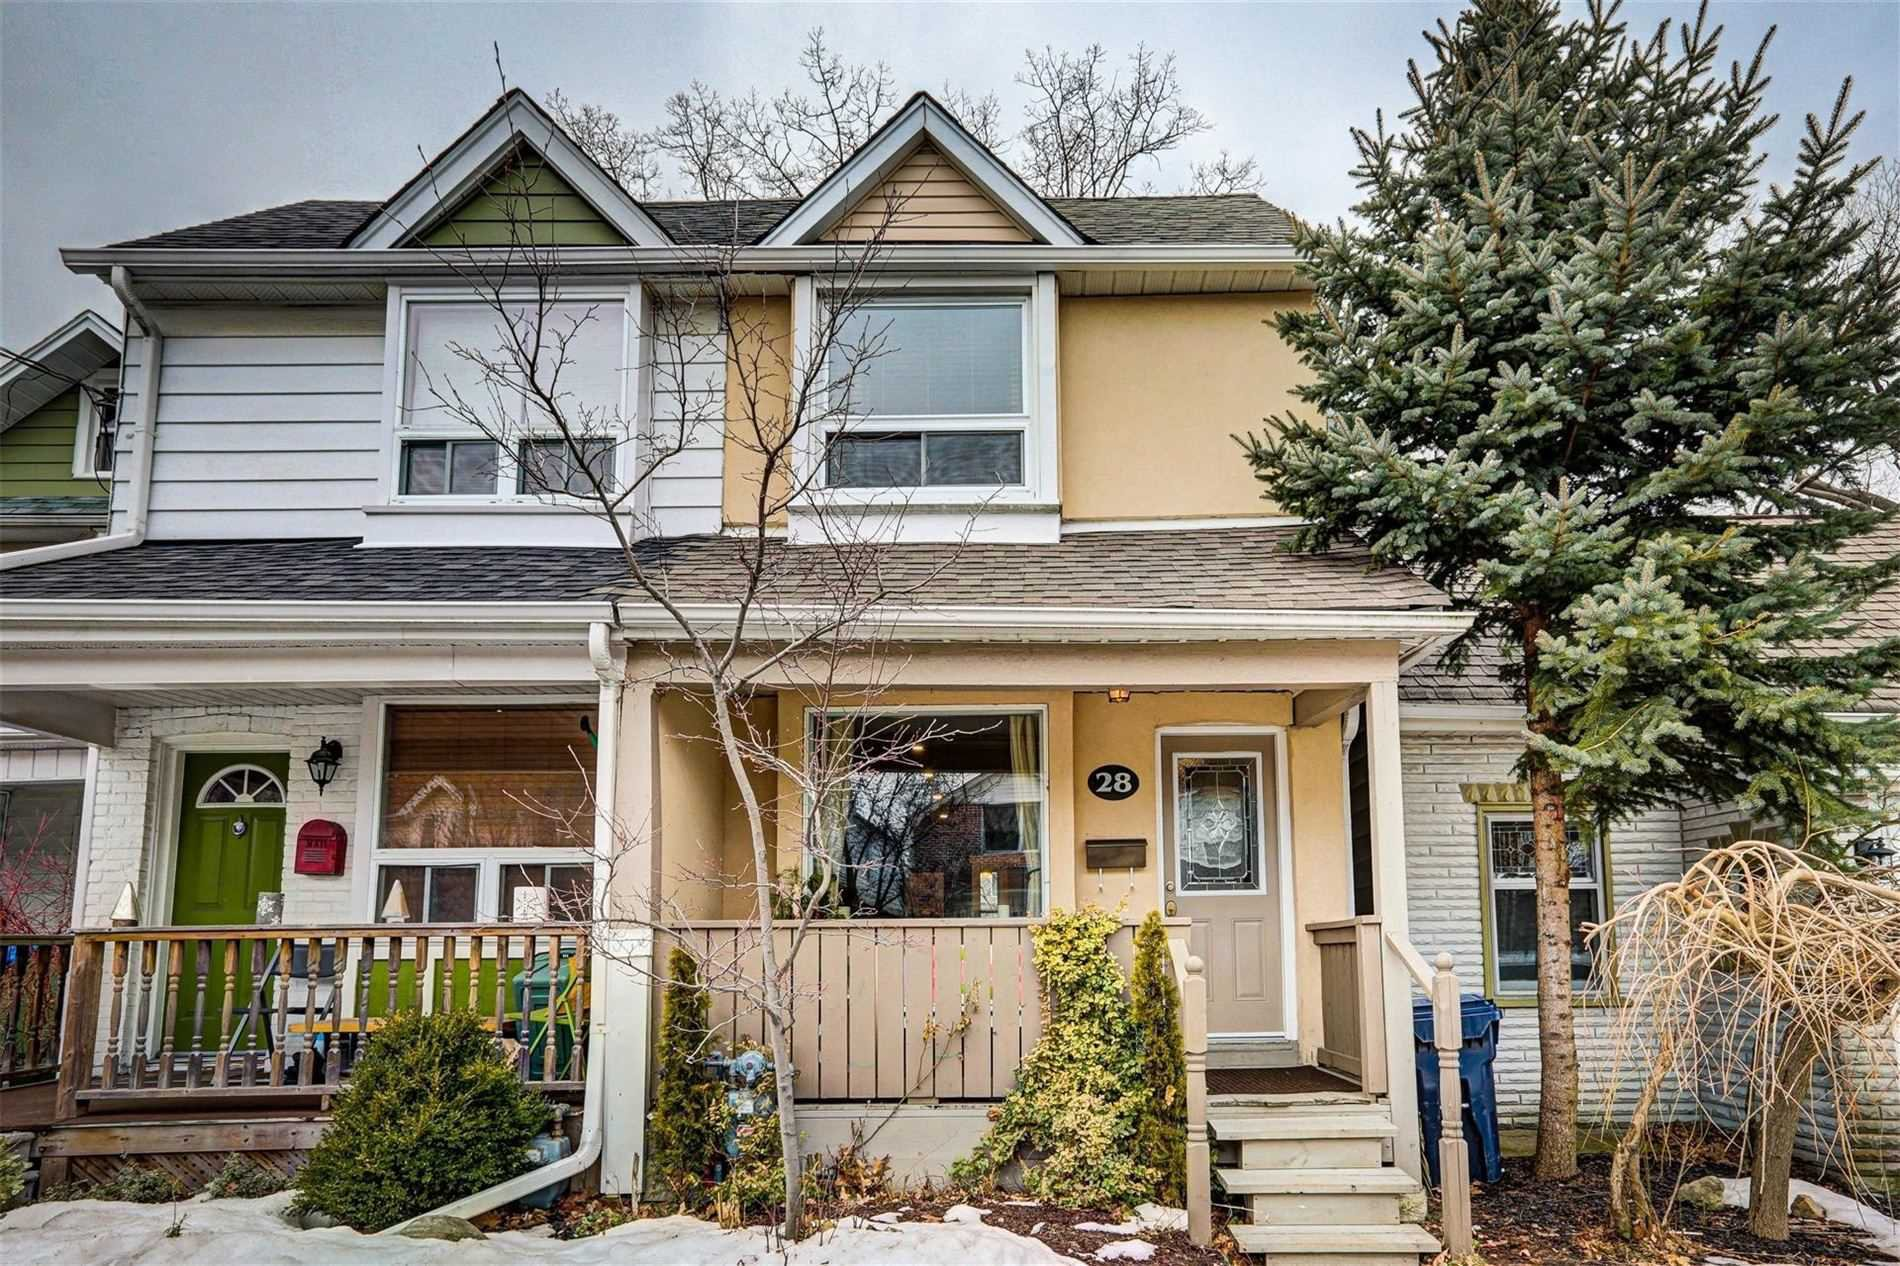 Main Photo: 28 Amroth Ave in Toronto: East End-Danforth Freehold for sale (Toronto E02)  : MLS®# E4678832